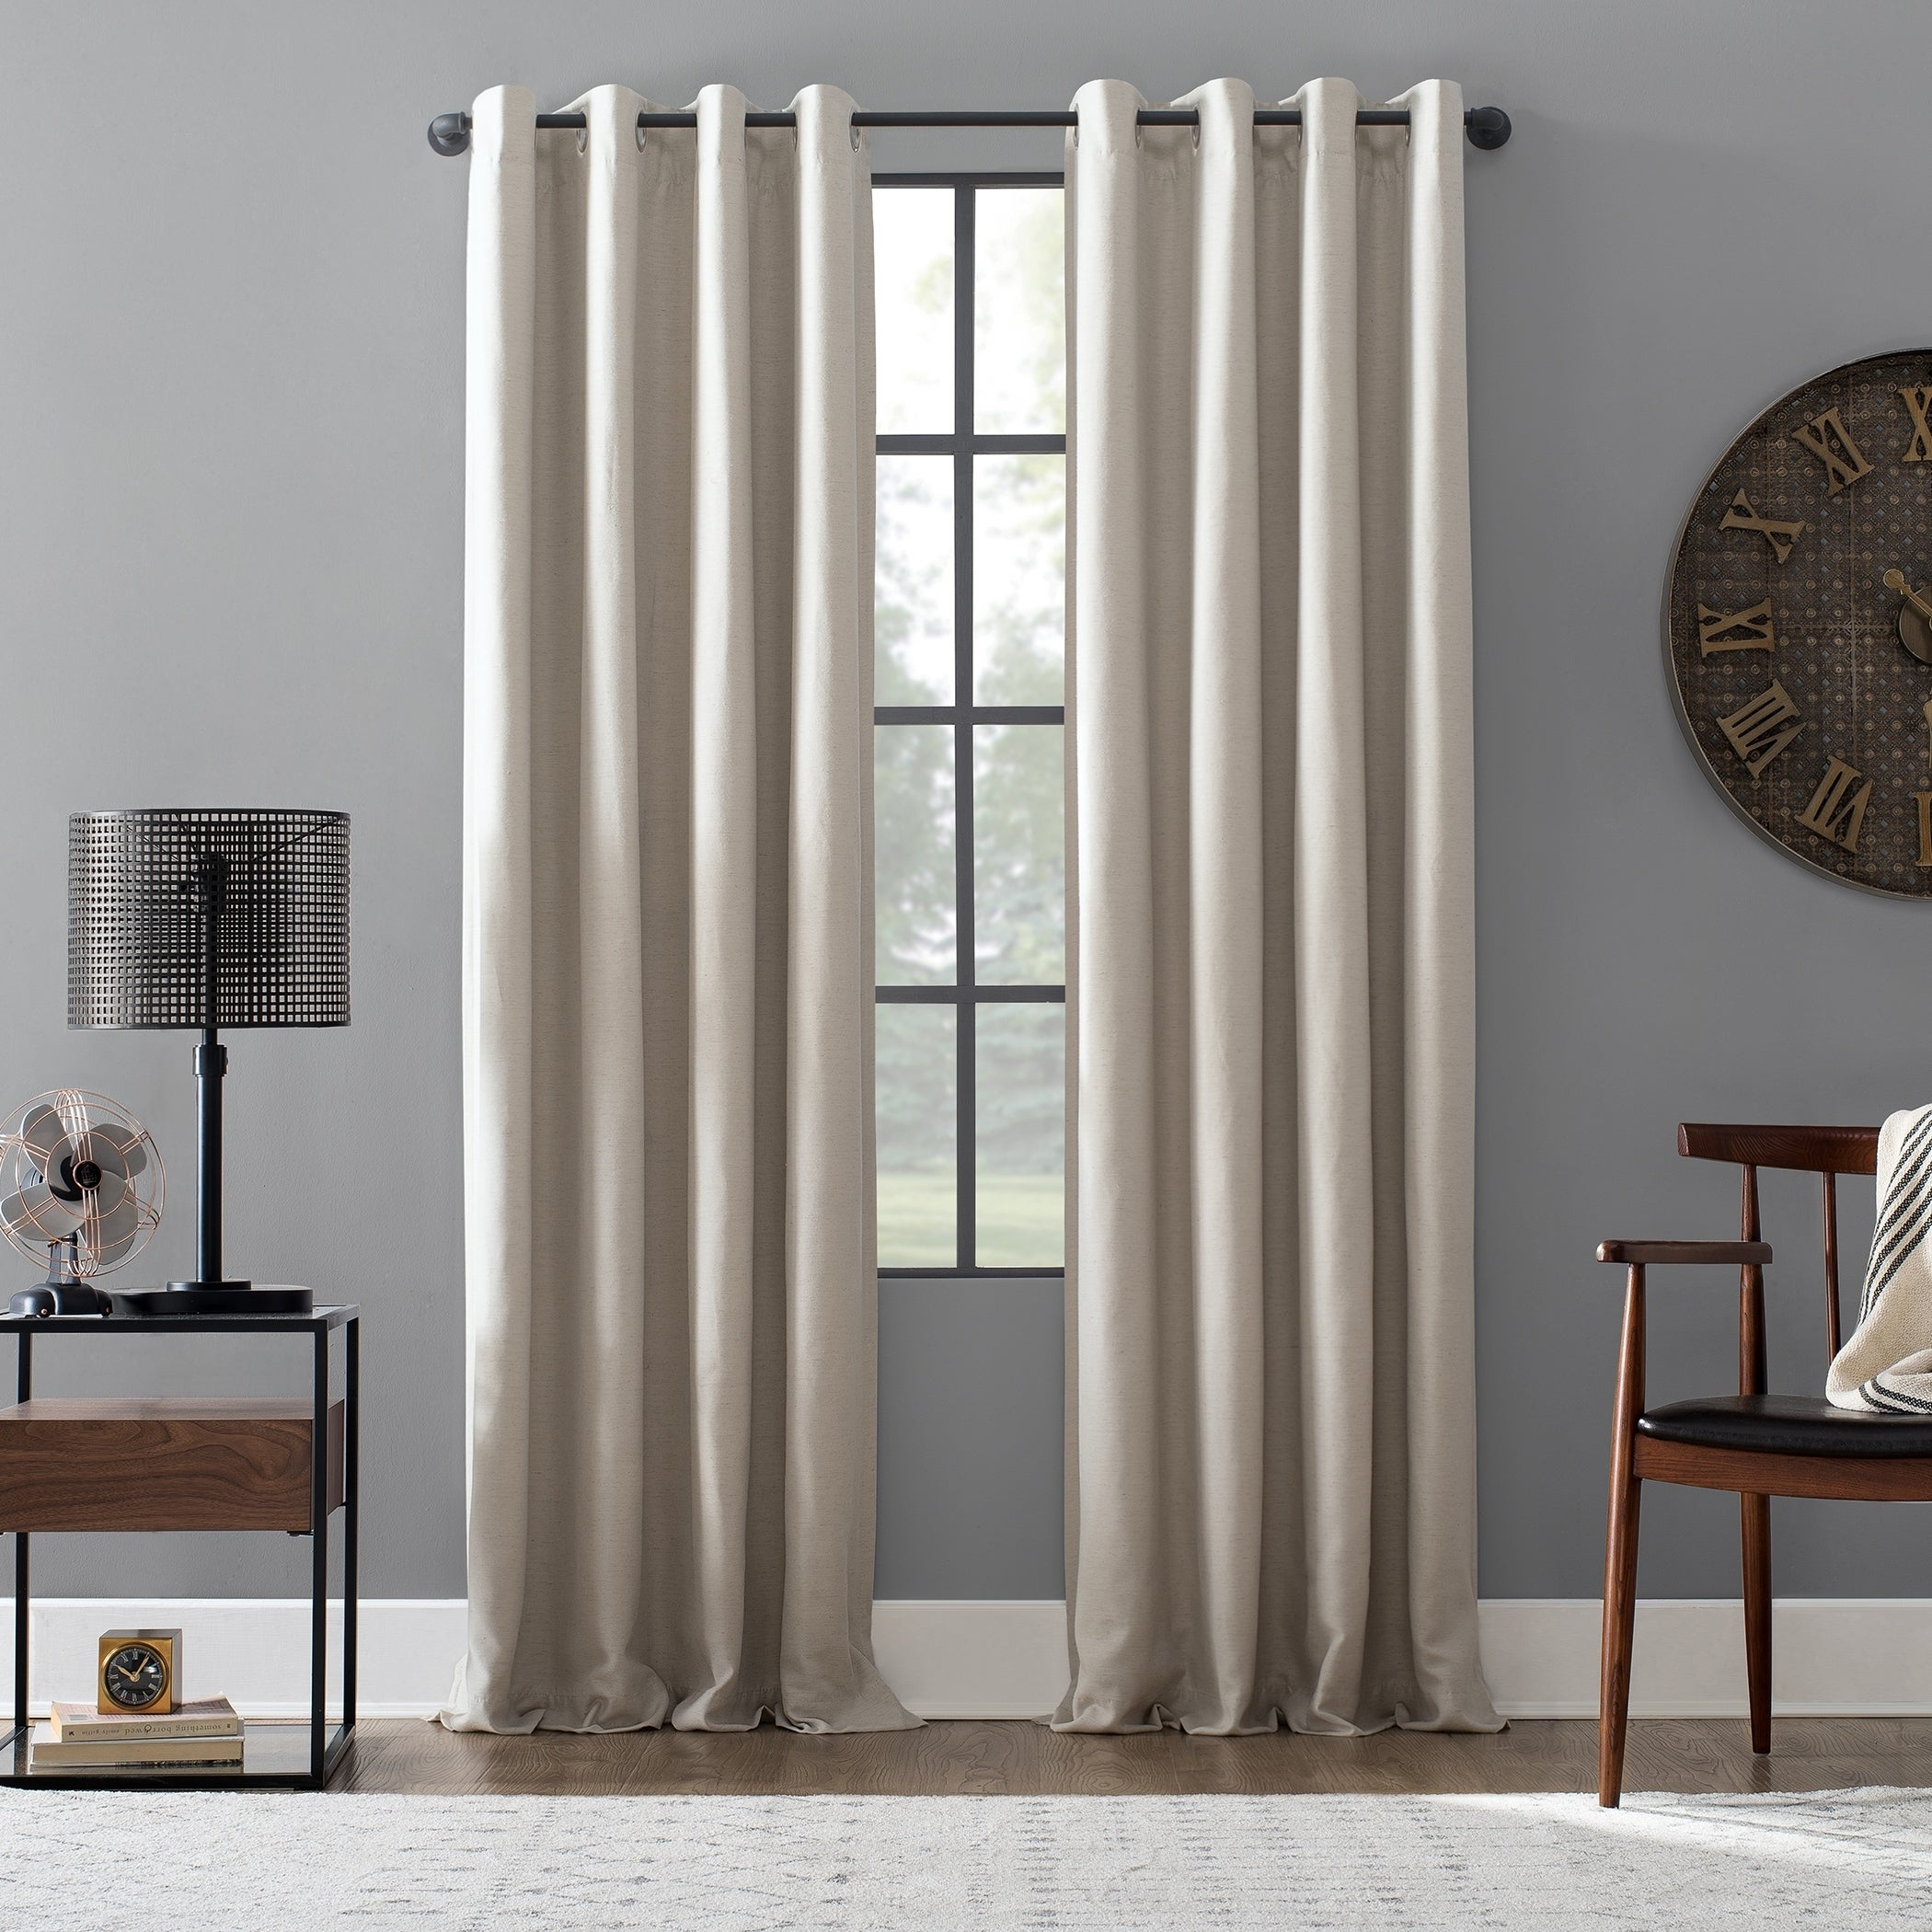 Archaeo Linen Blend Blackout Grommet Top Single Curtain Panel Pertaining To Archaeo Slub Textured Linen Blend Grommet Top Curtains (Image 3 of 20)